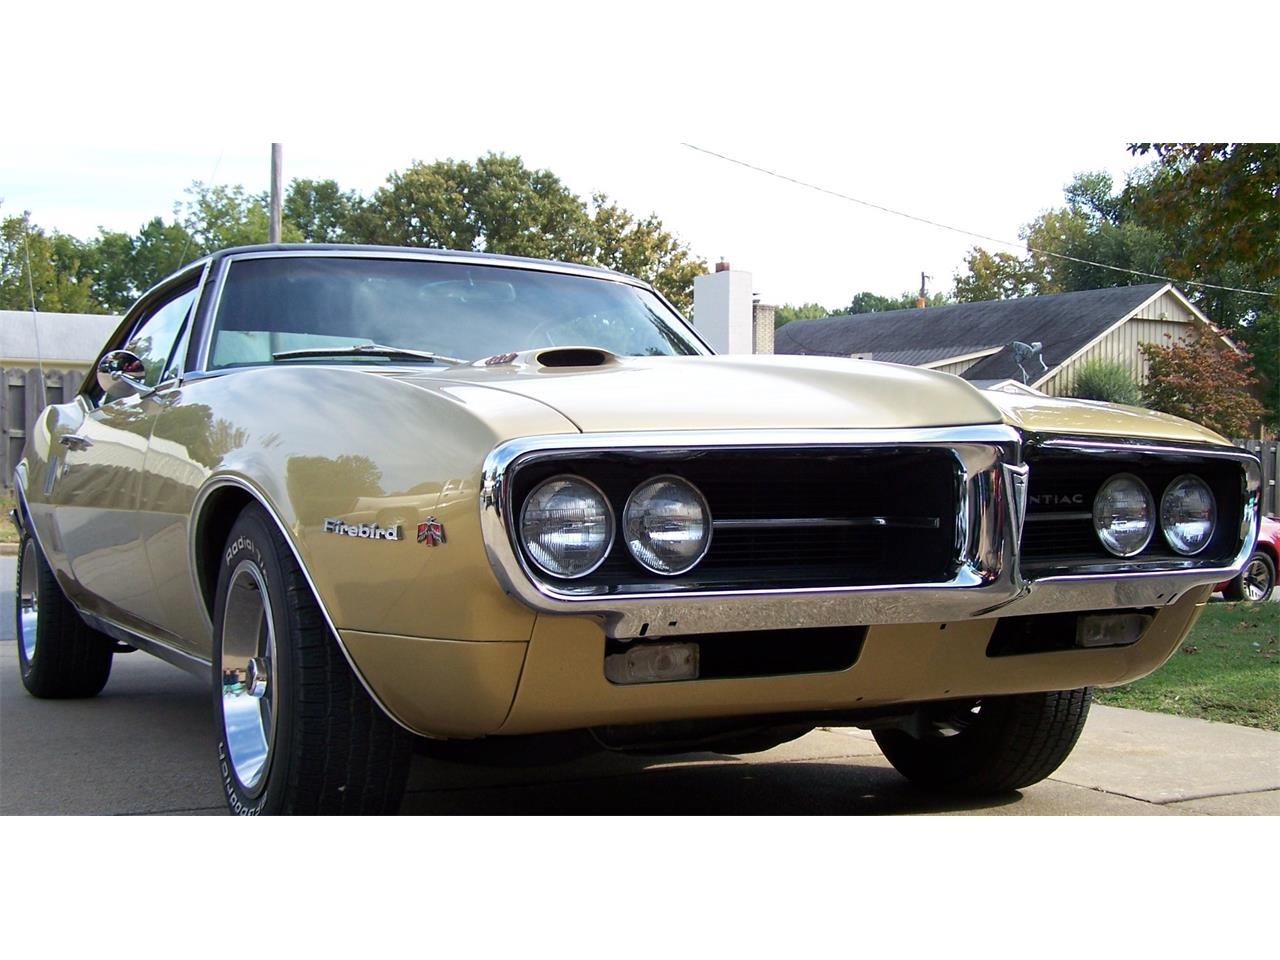 Large Picture of '67 Pontiac Firebird located in Arkansas - $29,995.00 Offered by a Private Seller - G9J7